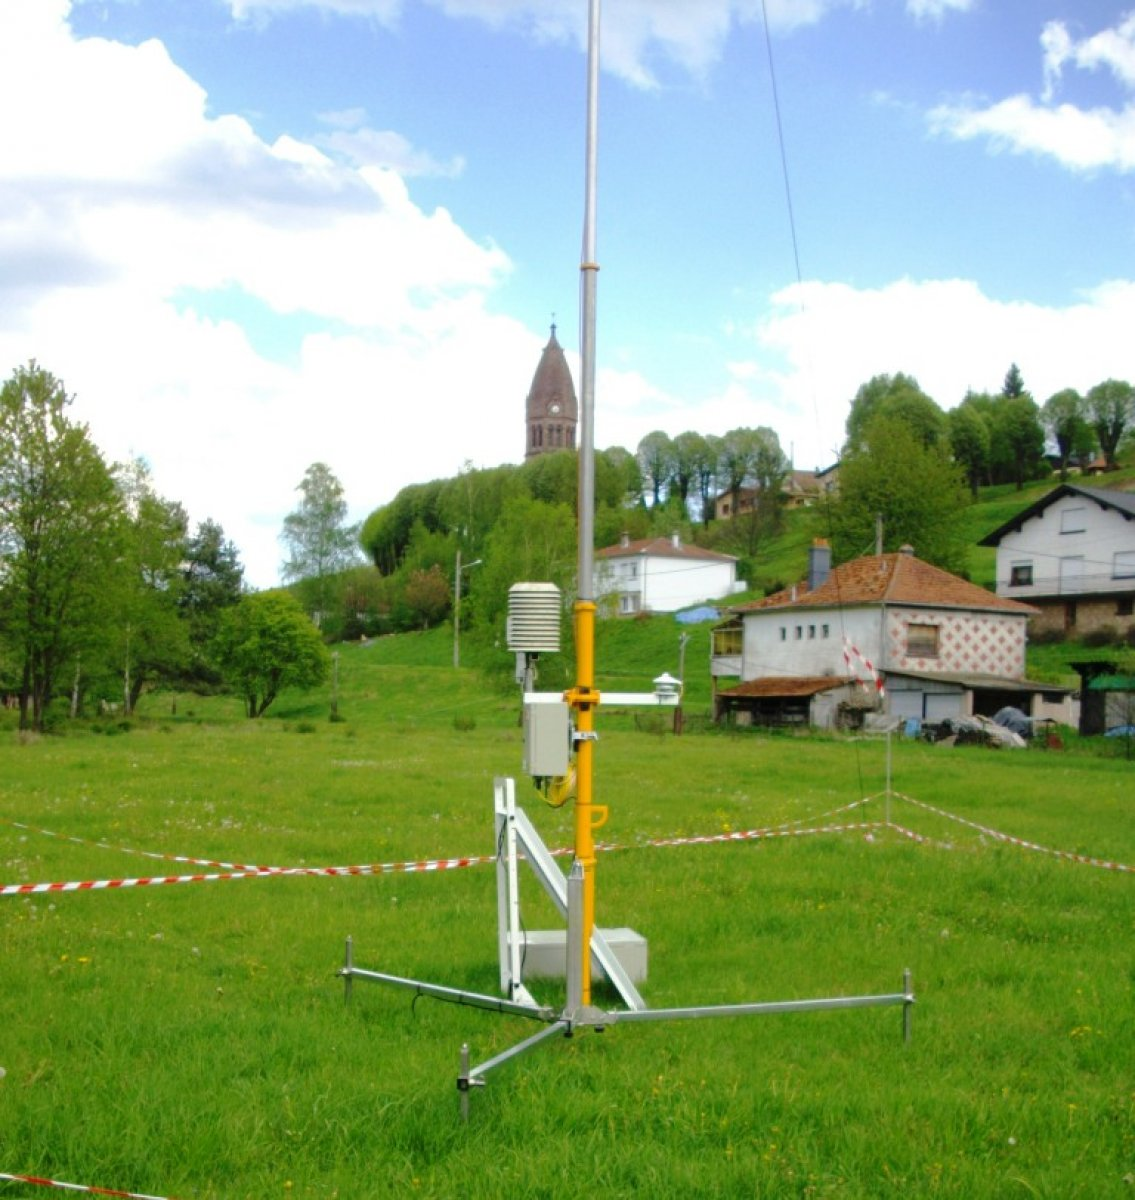 QT mast as a weather station